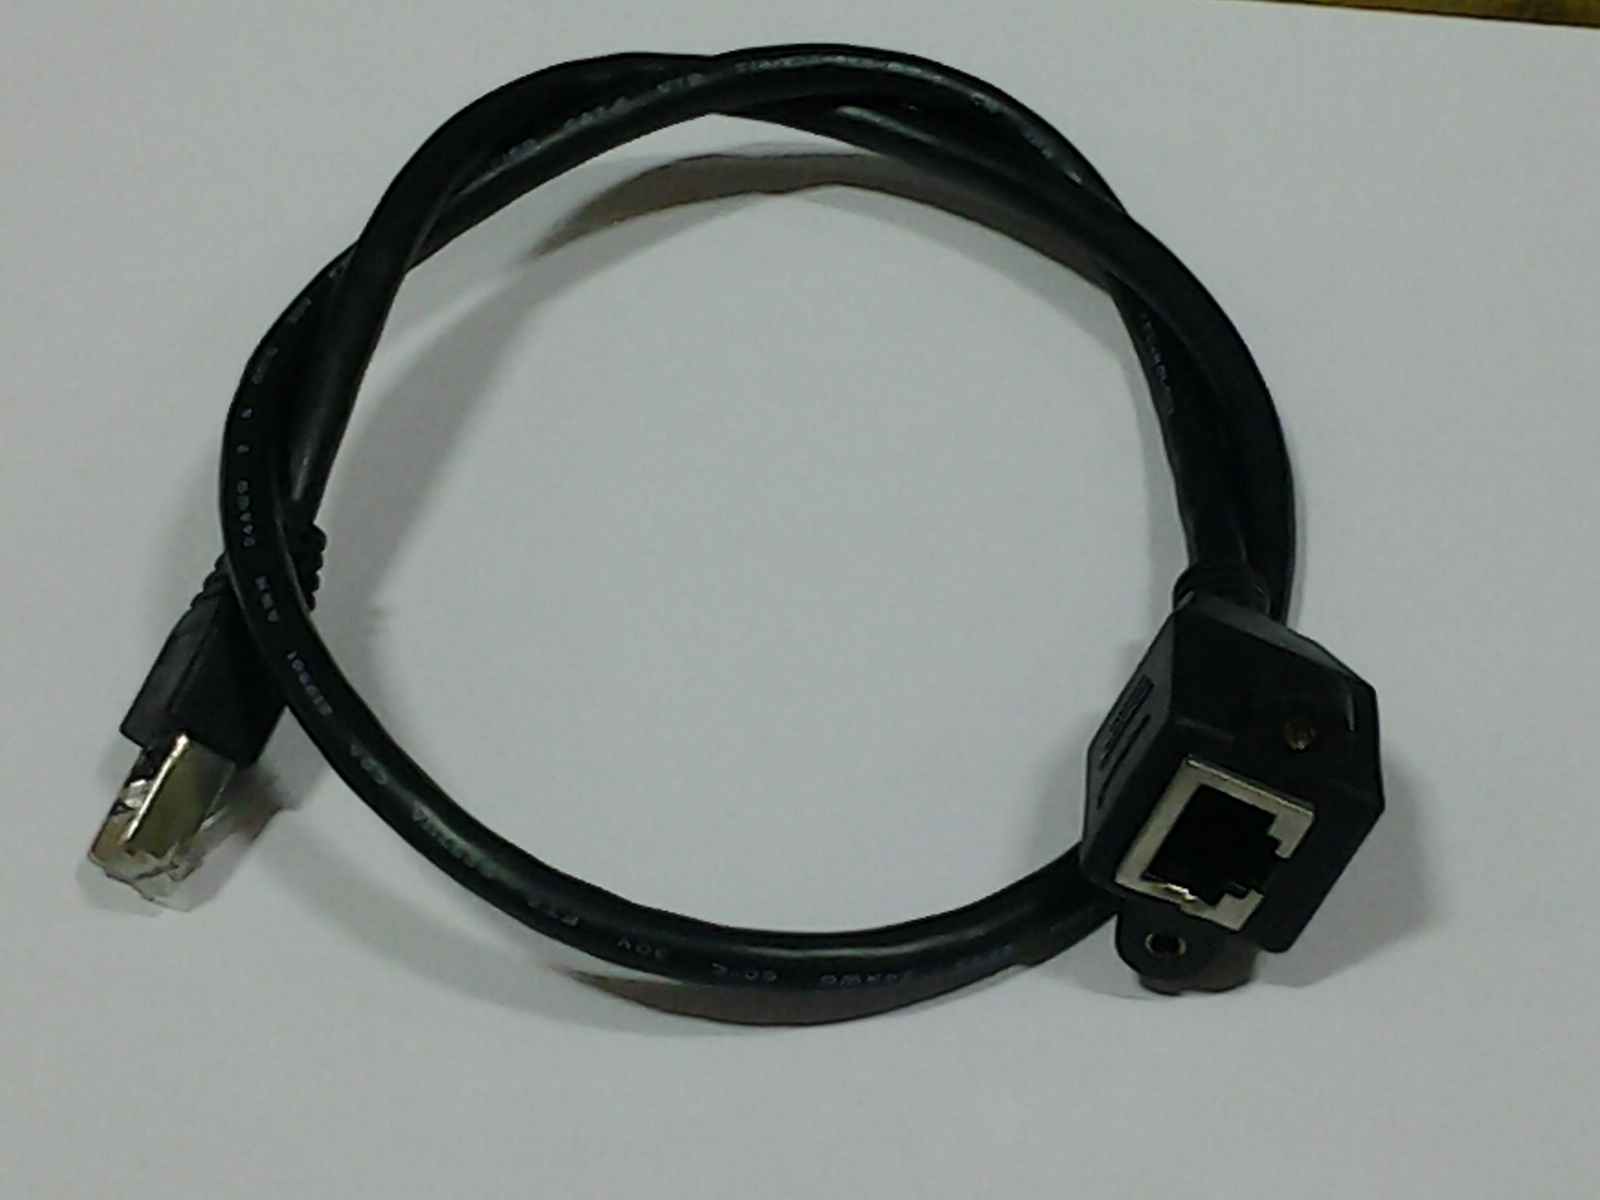 rj45-male-female-clamp-type-with-cat-6-cable-2-feet.jpg